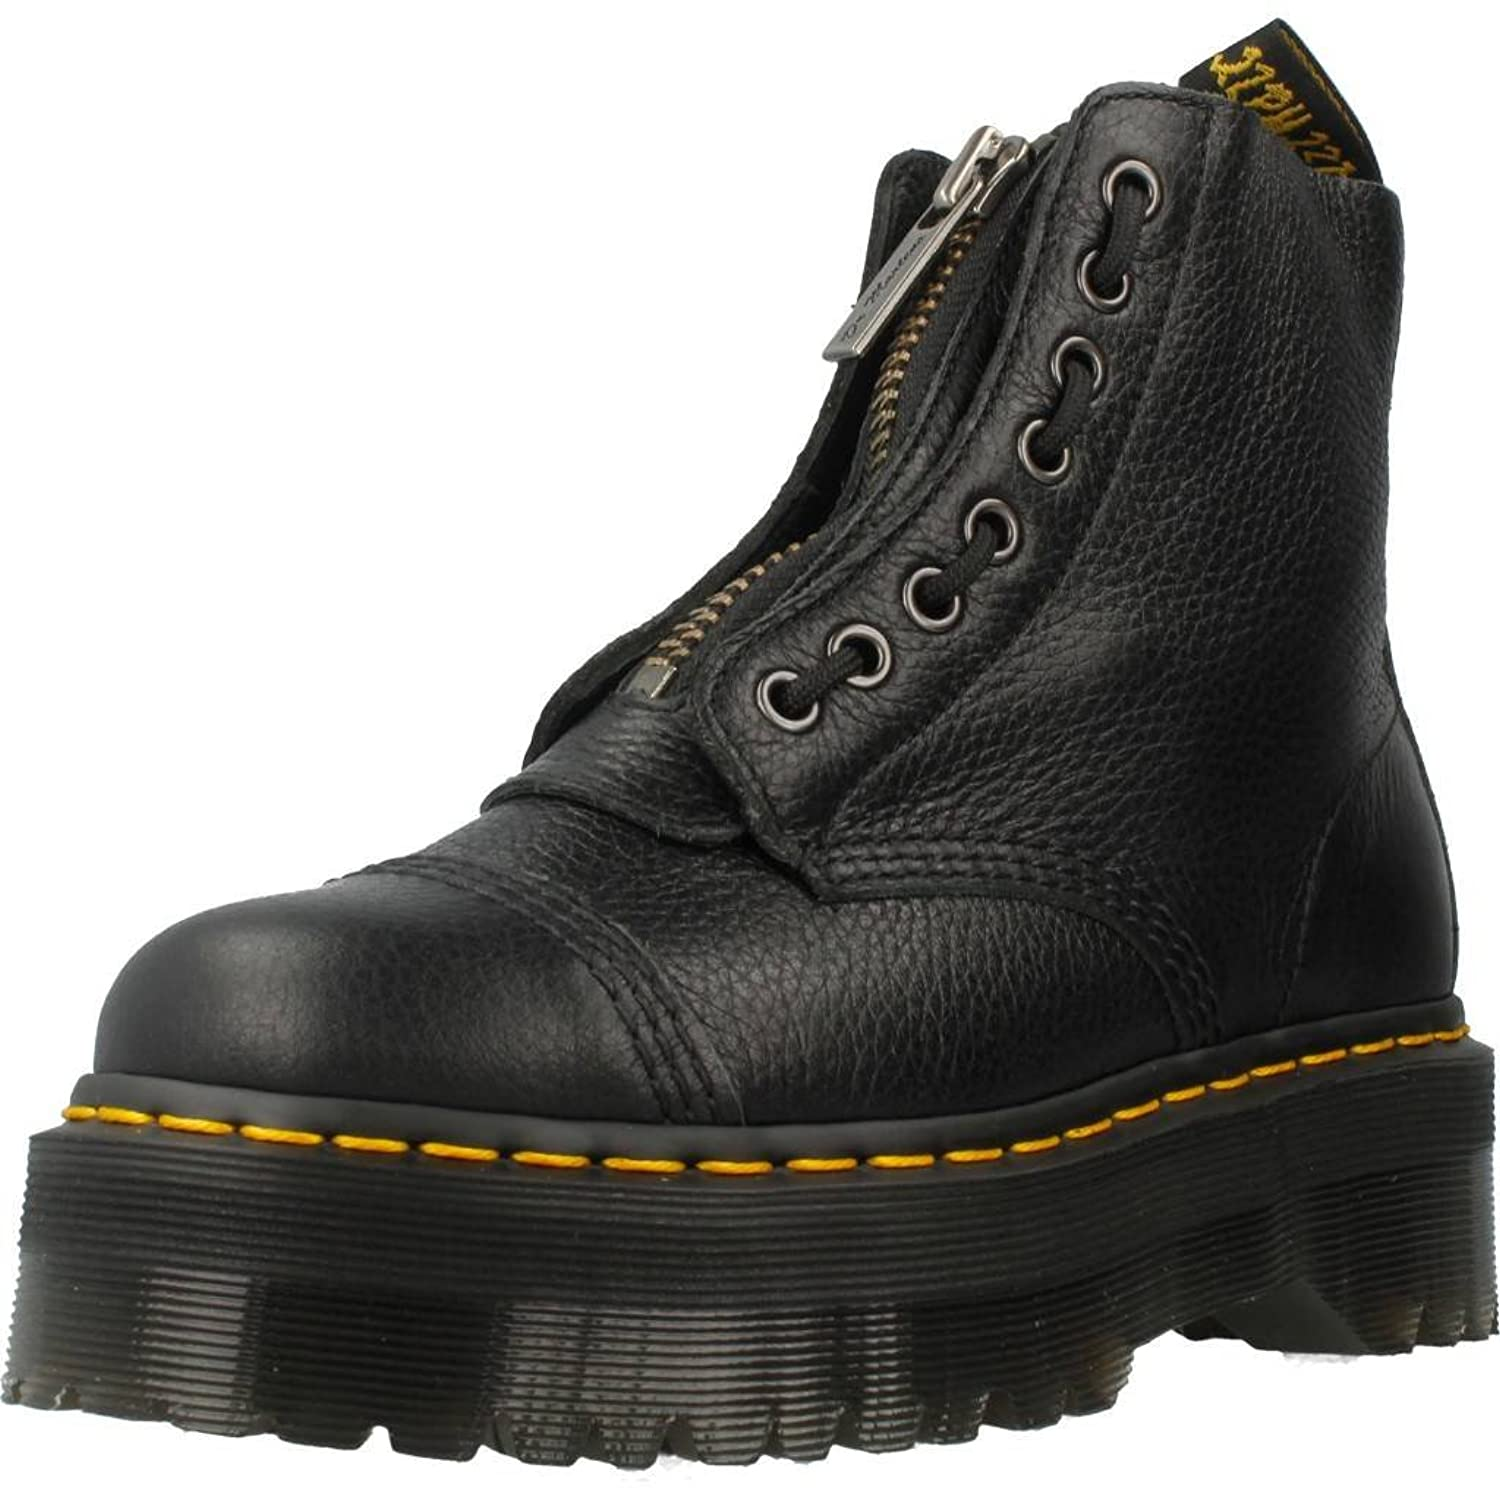 hot sale Dr.Martens Womens Sinclair Leather Boots